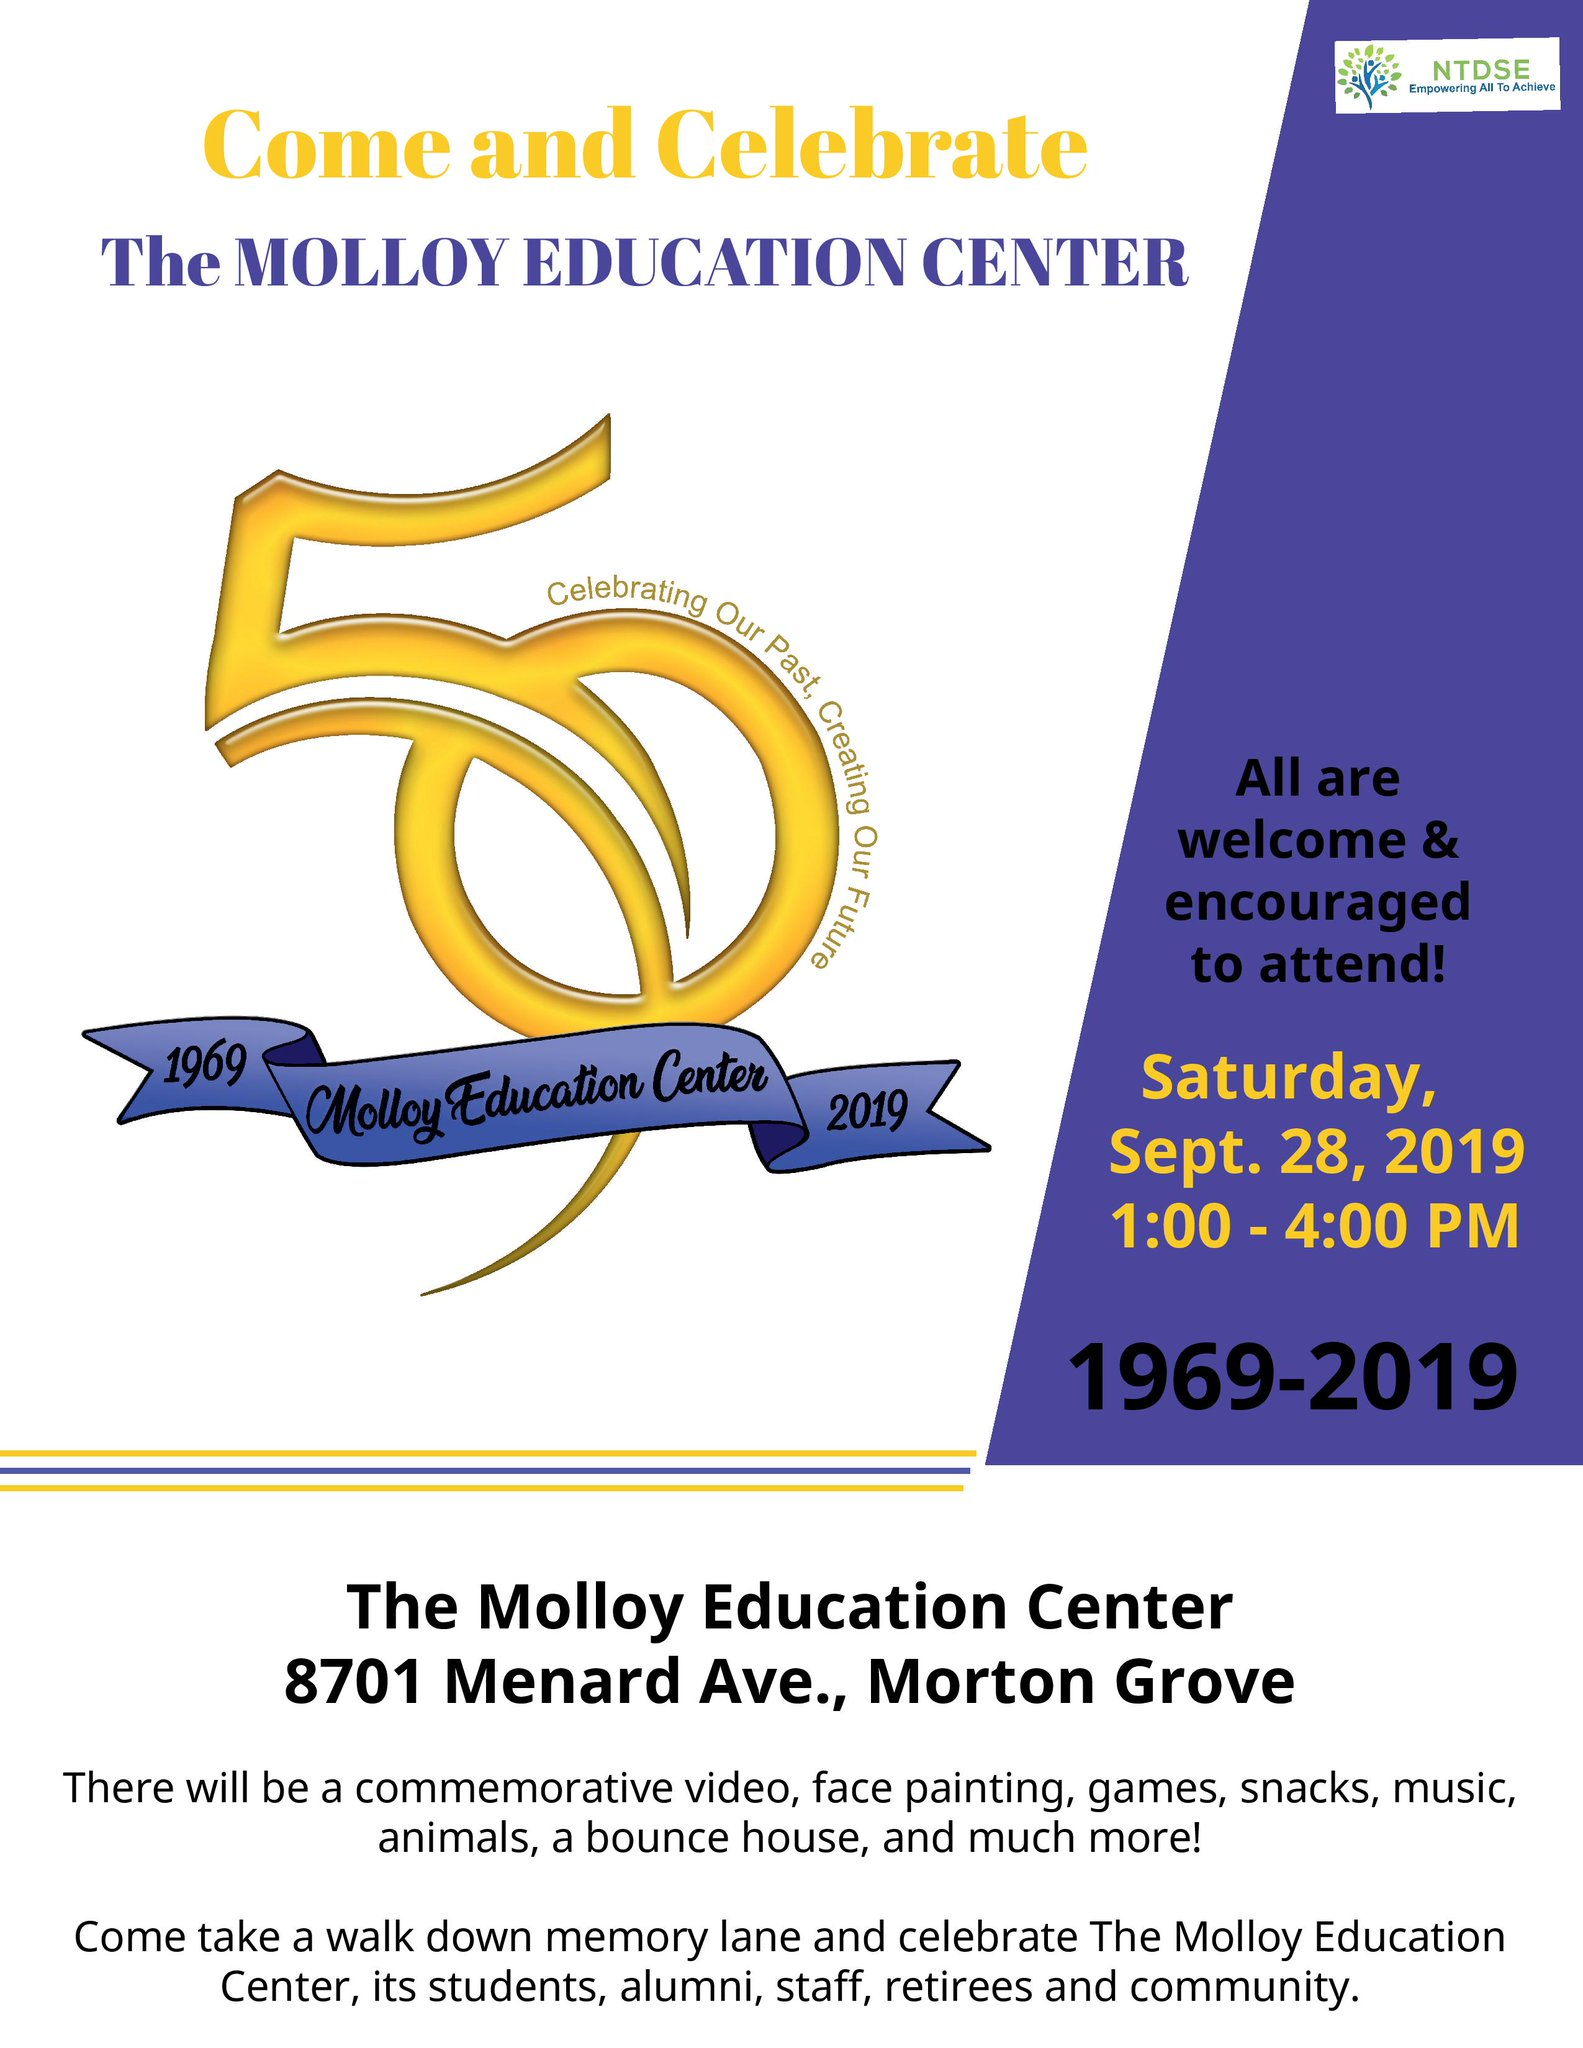 Ntdse On Twitter Get Excited Molloy S 5oth Anniversary Block Party Celebration Is On Saturday September 28 2019 From 1 4 Pm We Hope To See You There Ntdsempowers Https T Co G9axnhqq8w Become a patron of tim molloy today: twitter